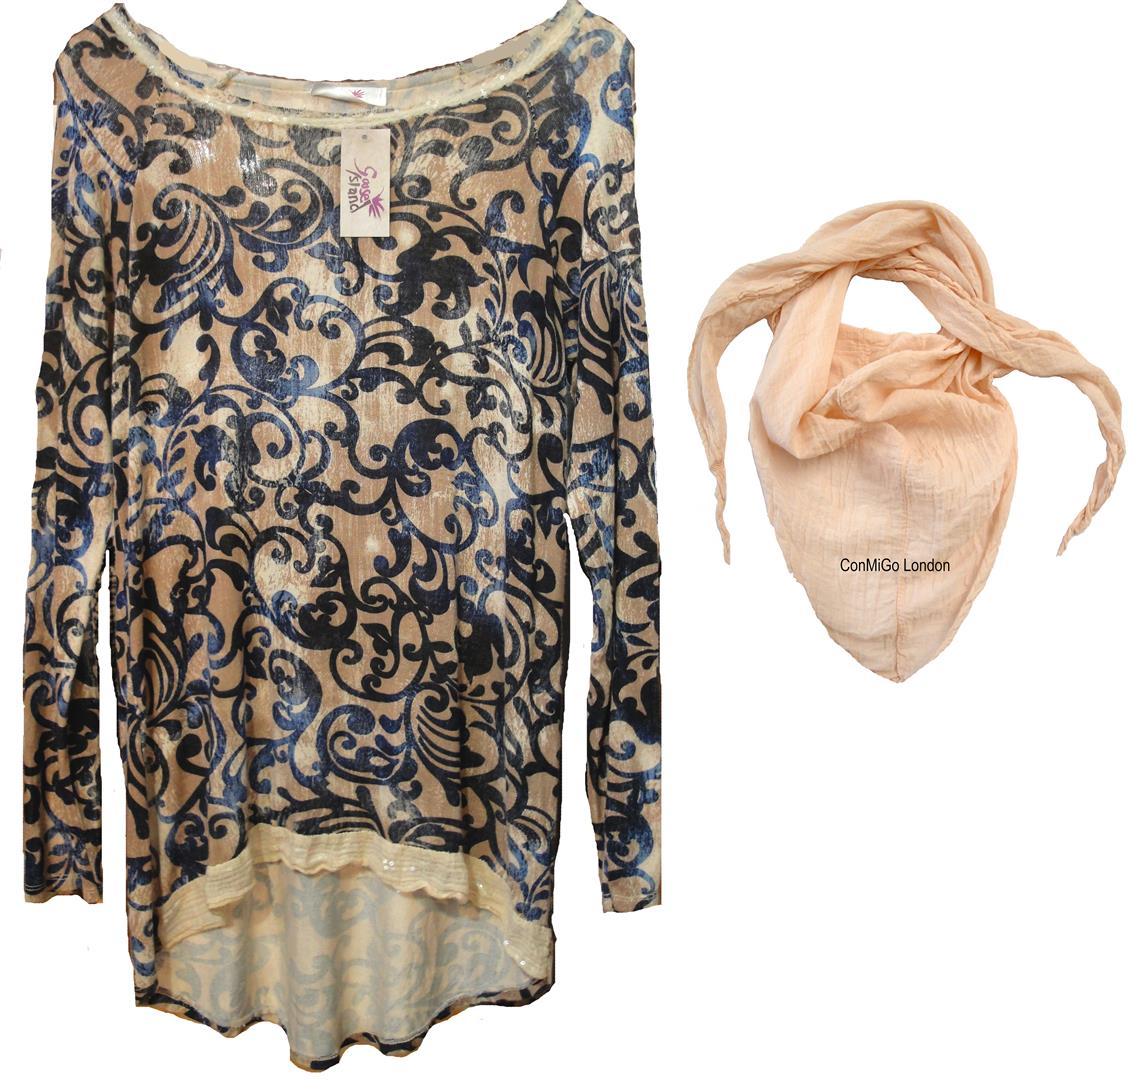 http://www.conmigolondon.co.uk/ekmps/shops/conmigo/images/1a.-goose-island-floral-tunic-with-free-scarf-peach-made-in-italy-11794-p.jpg